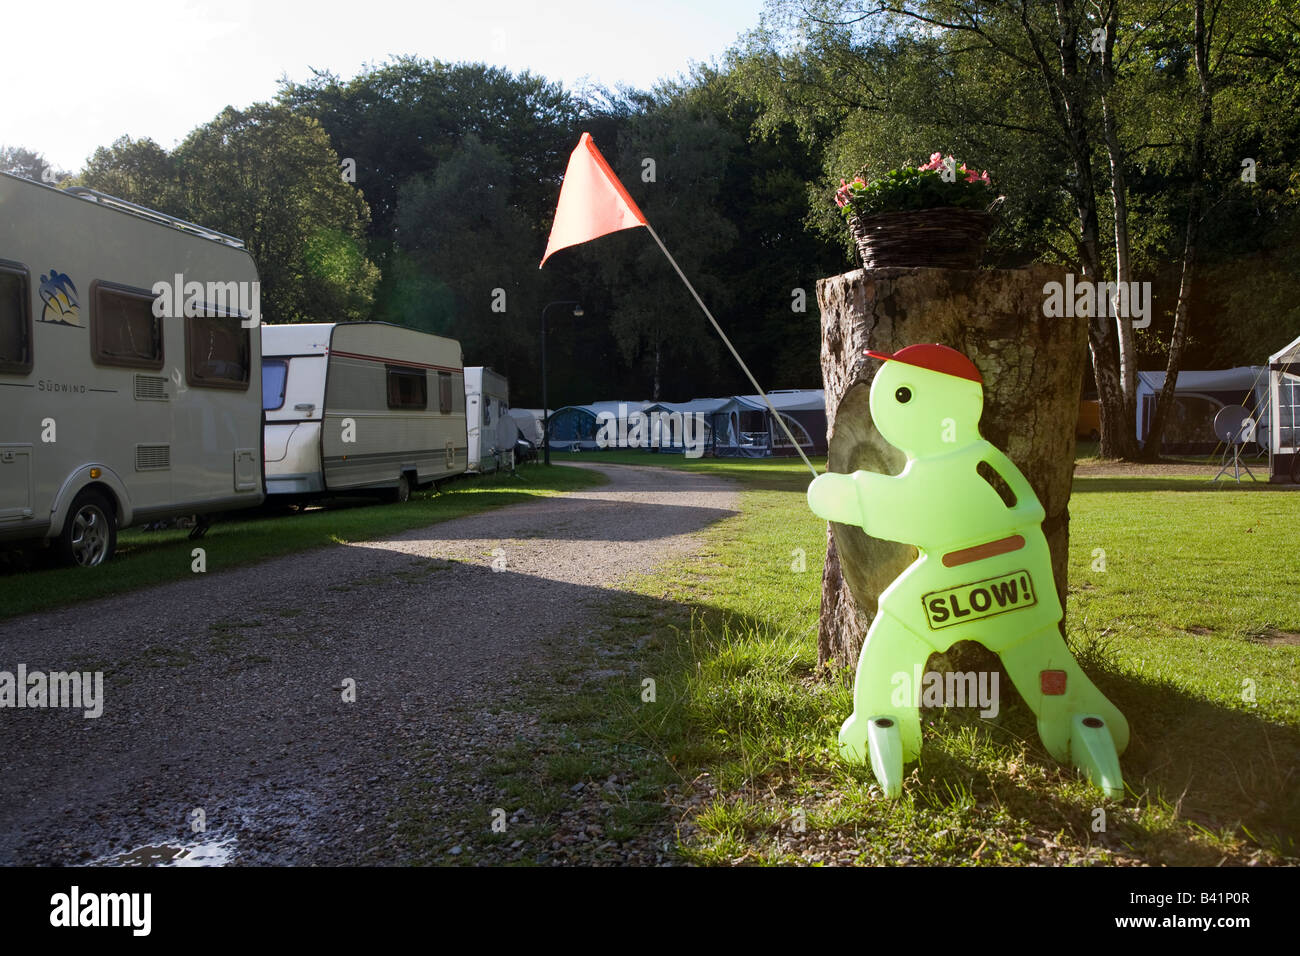 Slow sign in campsite Netherlands - Stock Image